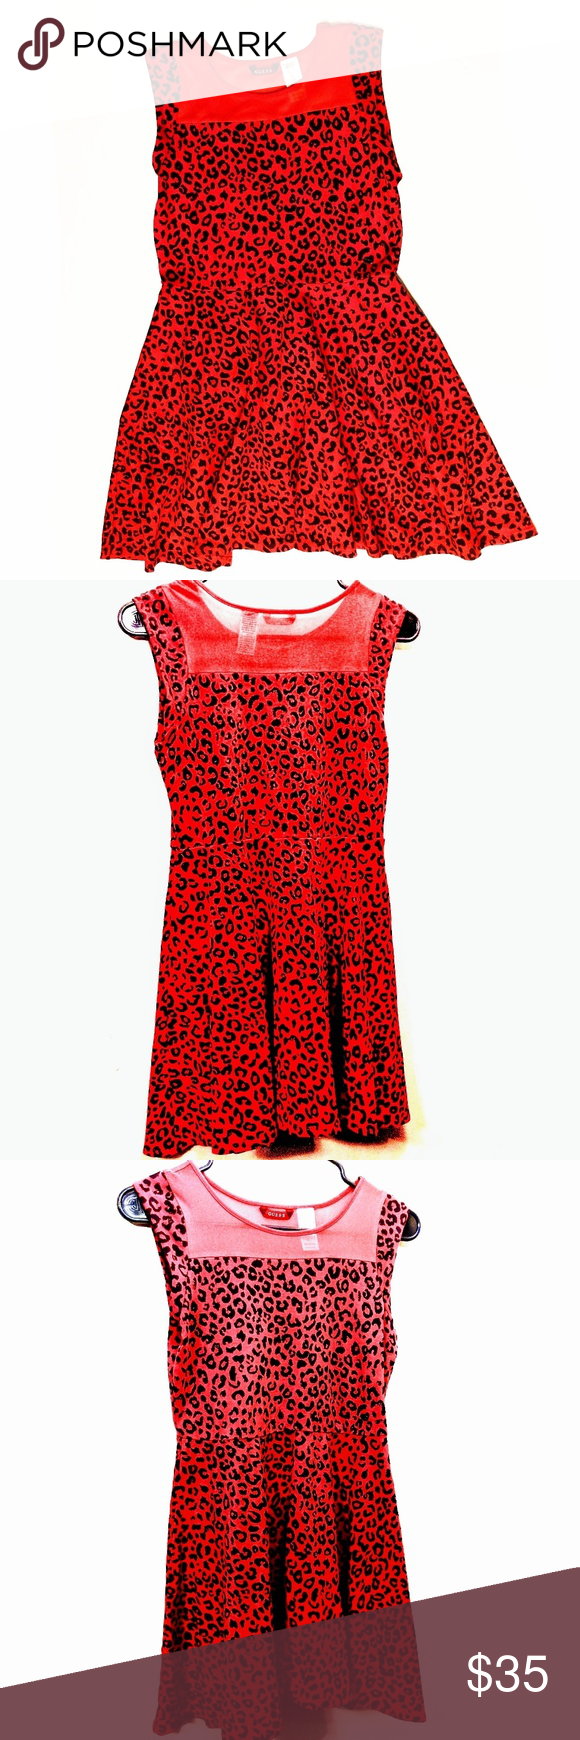 9f08b61140 GUESS Red Cheetah Leopard Print Dress This dress is labeled as a medium